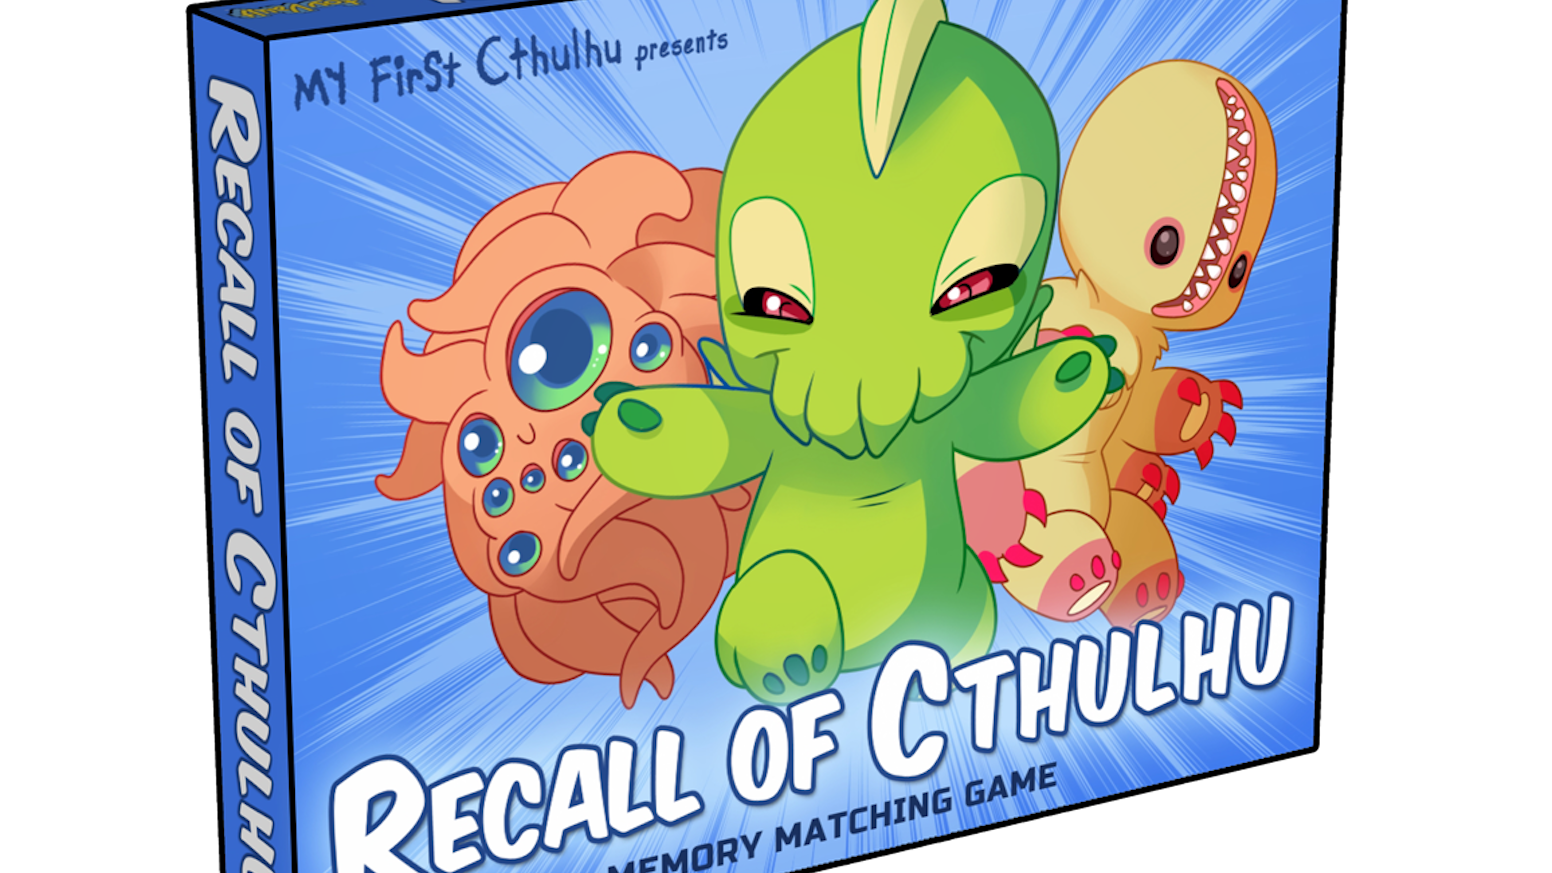 recall of cthulhu a children s memory matching game by toy vault